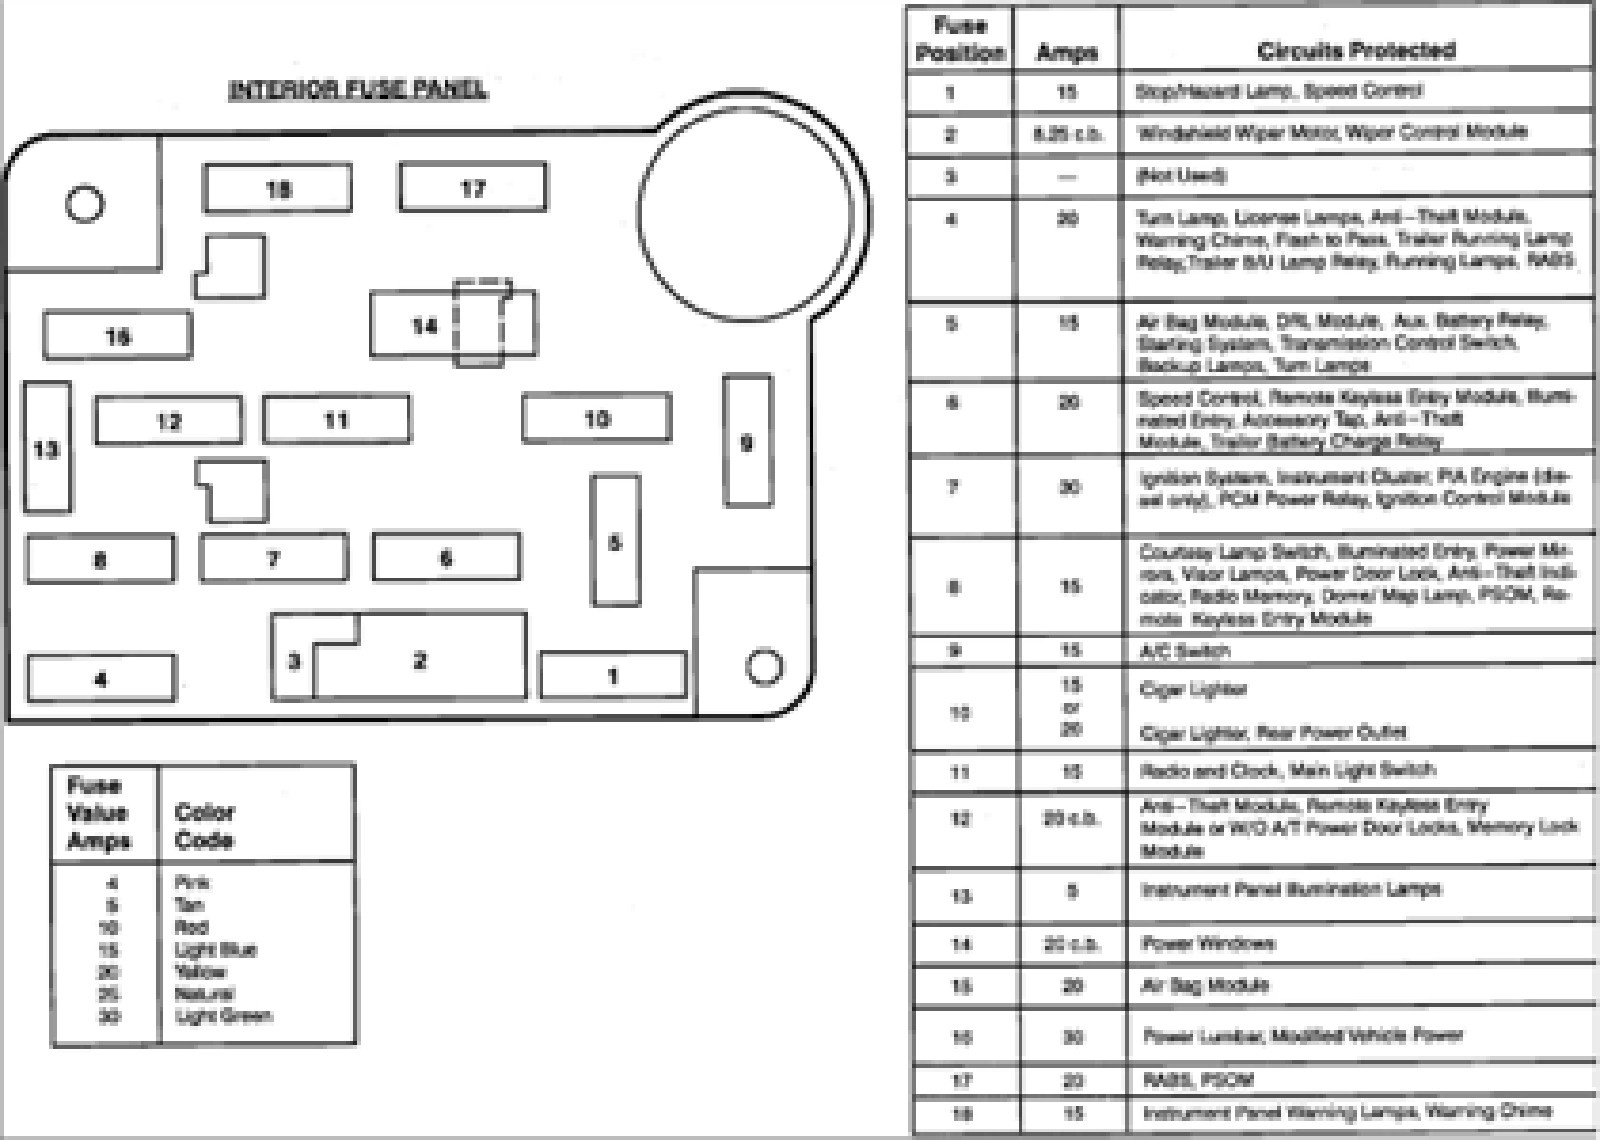 Fuse Box O Archive Of Automotive Wiring Diagram 04 Ford Focus E 150 Questions For A 1993 Econoline Van Rh Cargurus Com On 2012 2004 F150